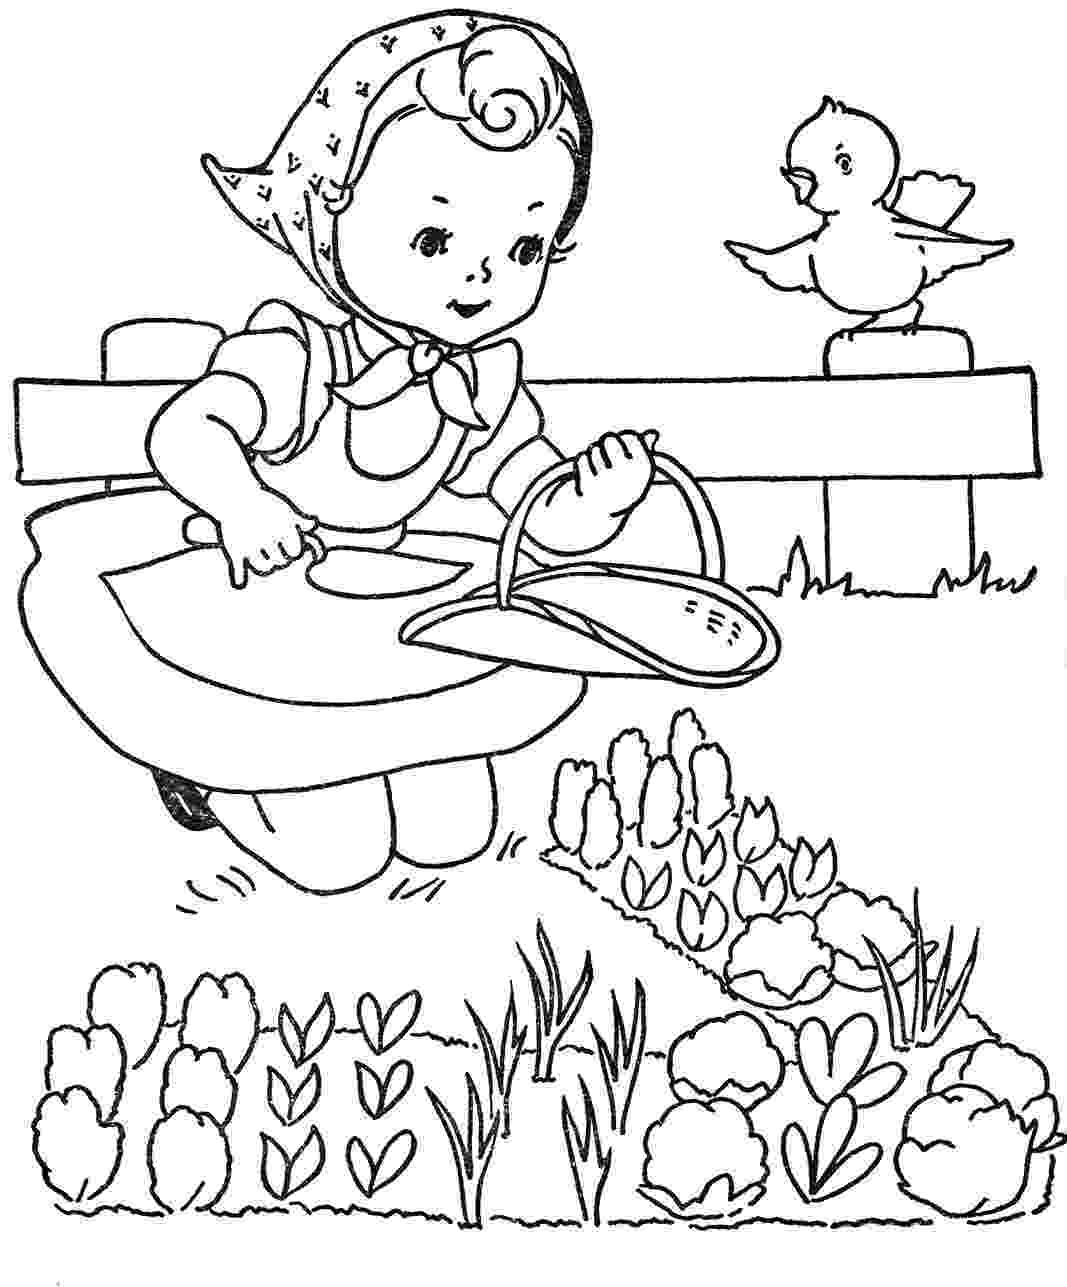 gardening colouring sheets 17 best images about gardening coloring pages on pinterest colouring gardening sheets